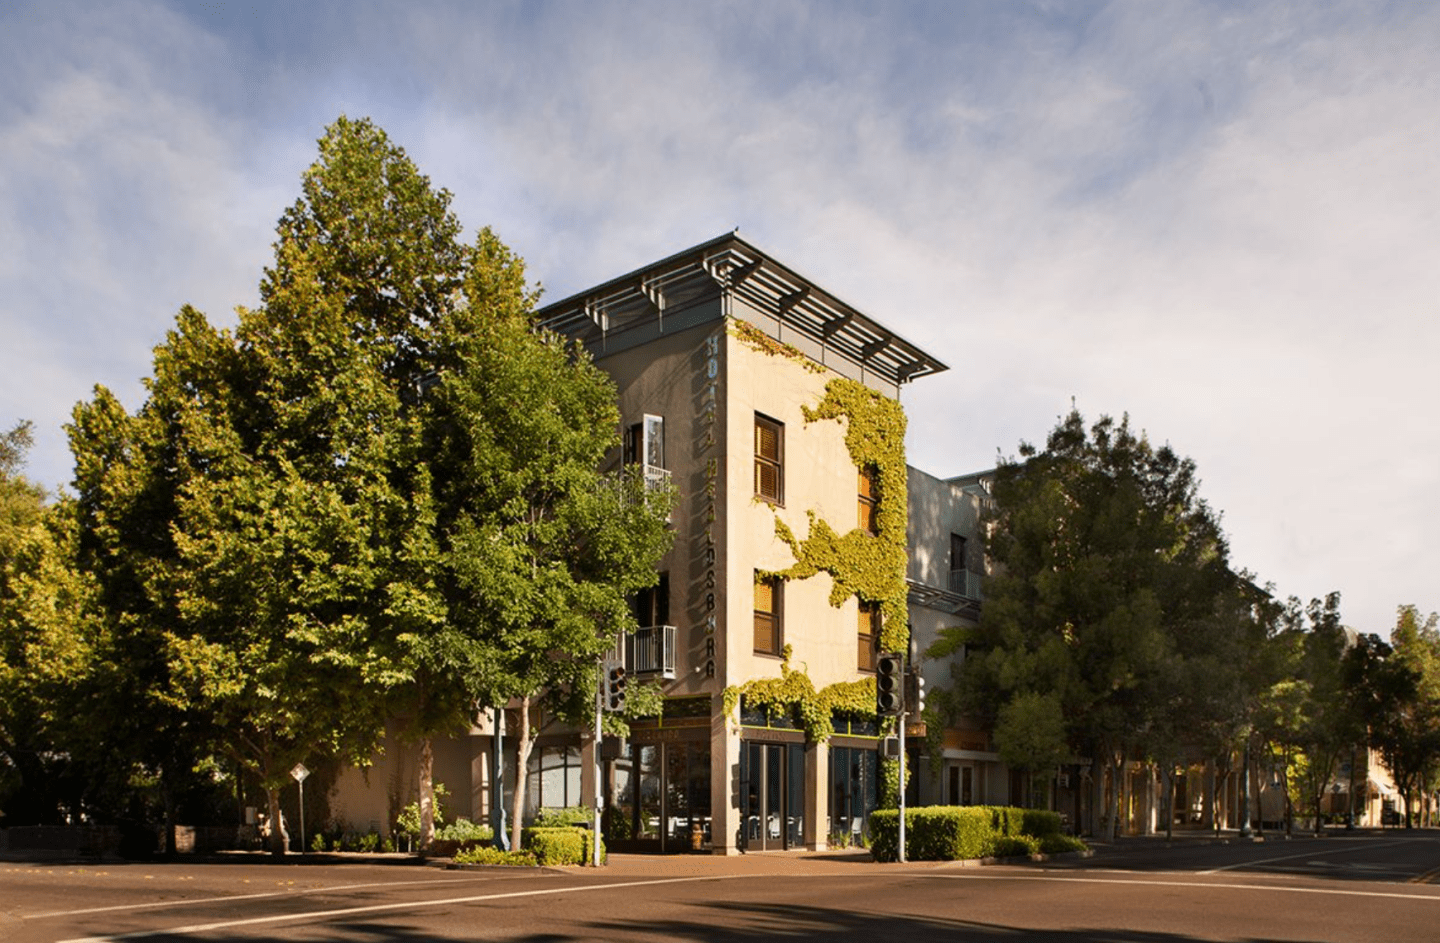 The front of Hotel Healdsburg in downtown Healdsburg.